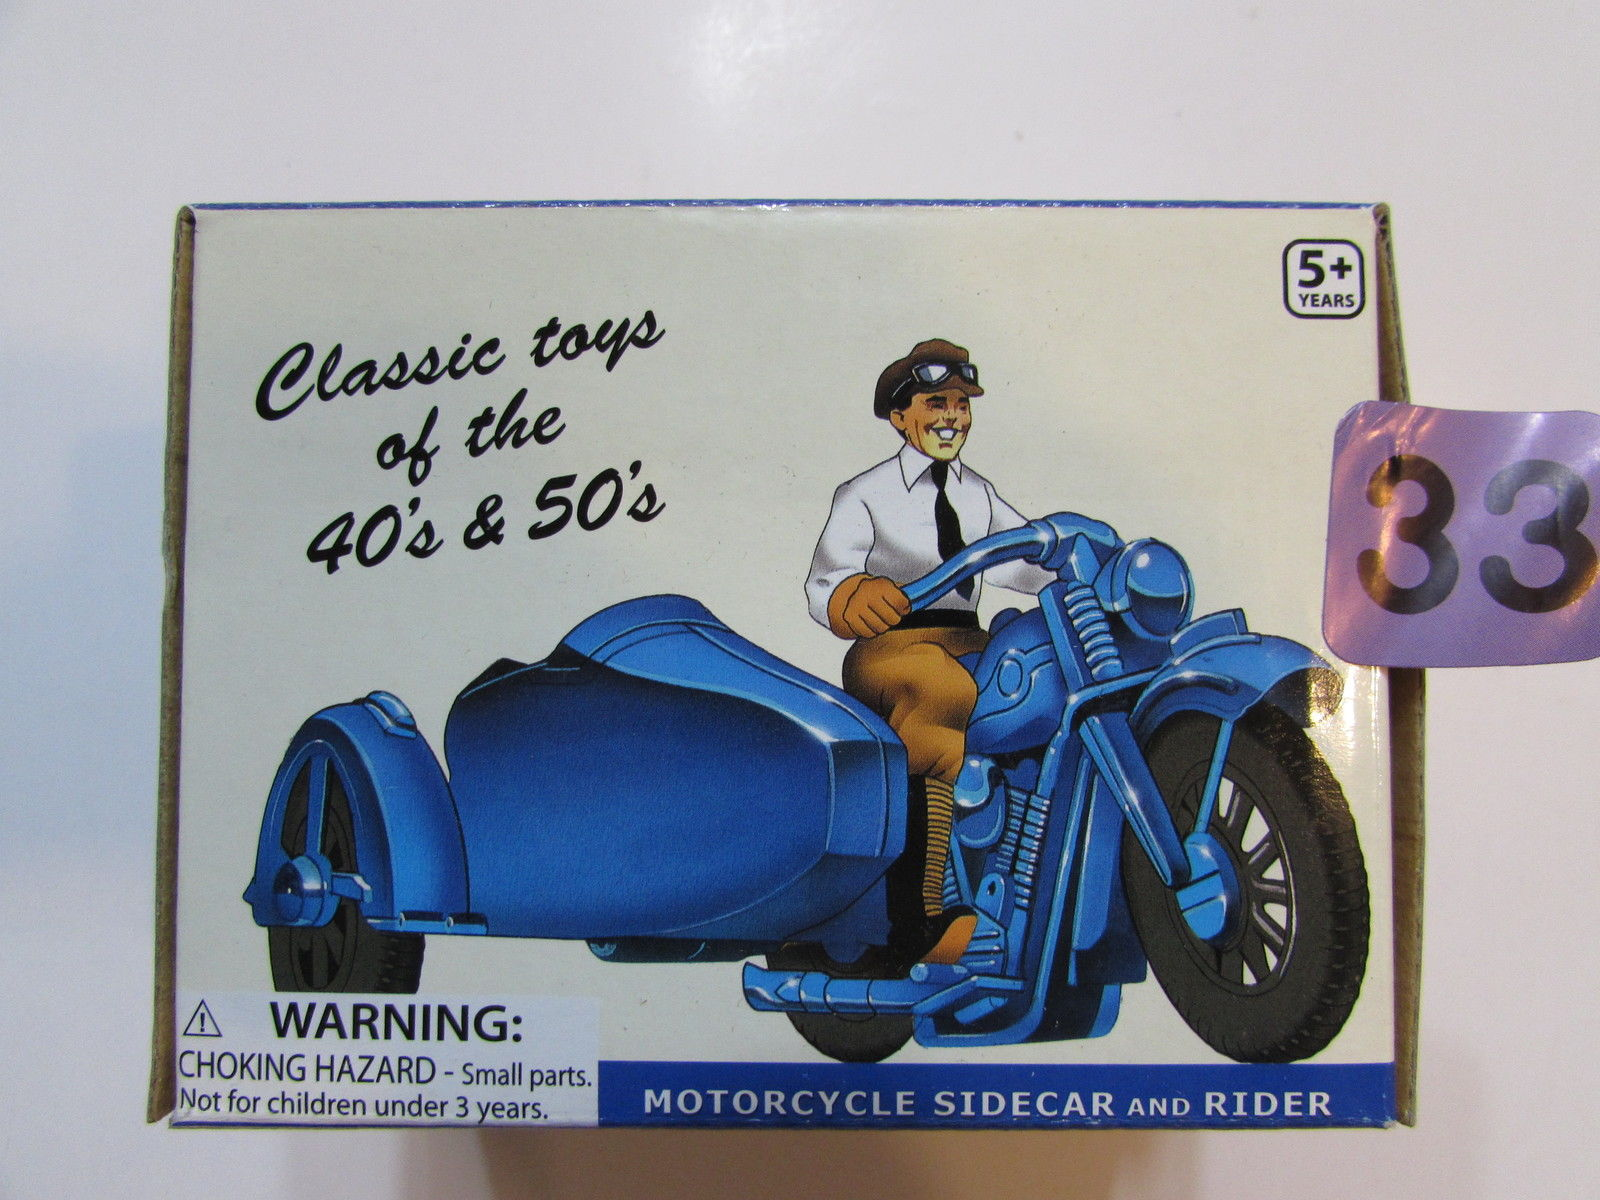 TOYSMITH 2008 MOTORCYCLE SIDECAR AND RIDER SCALE 1:24 DELUXE PLASTIC